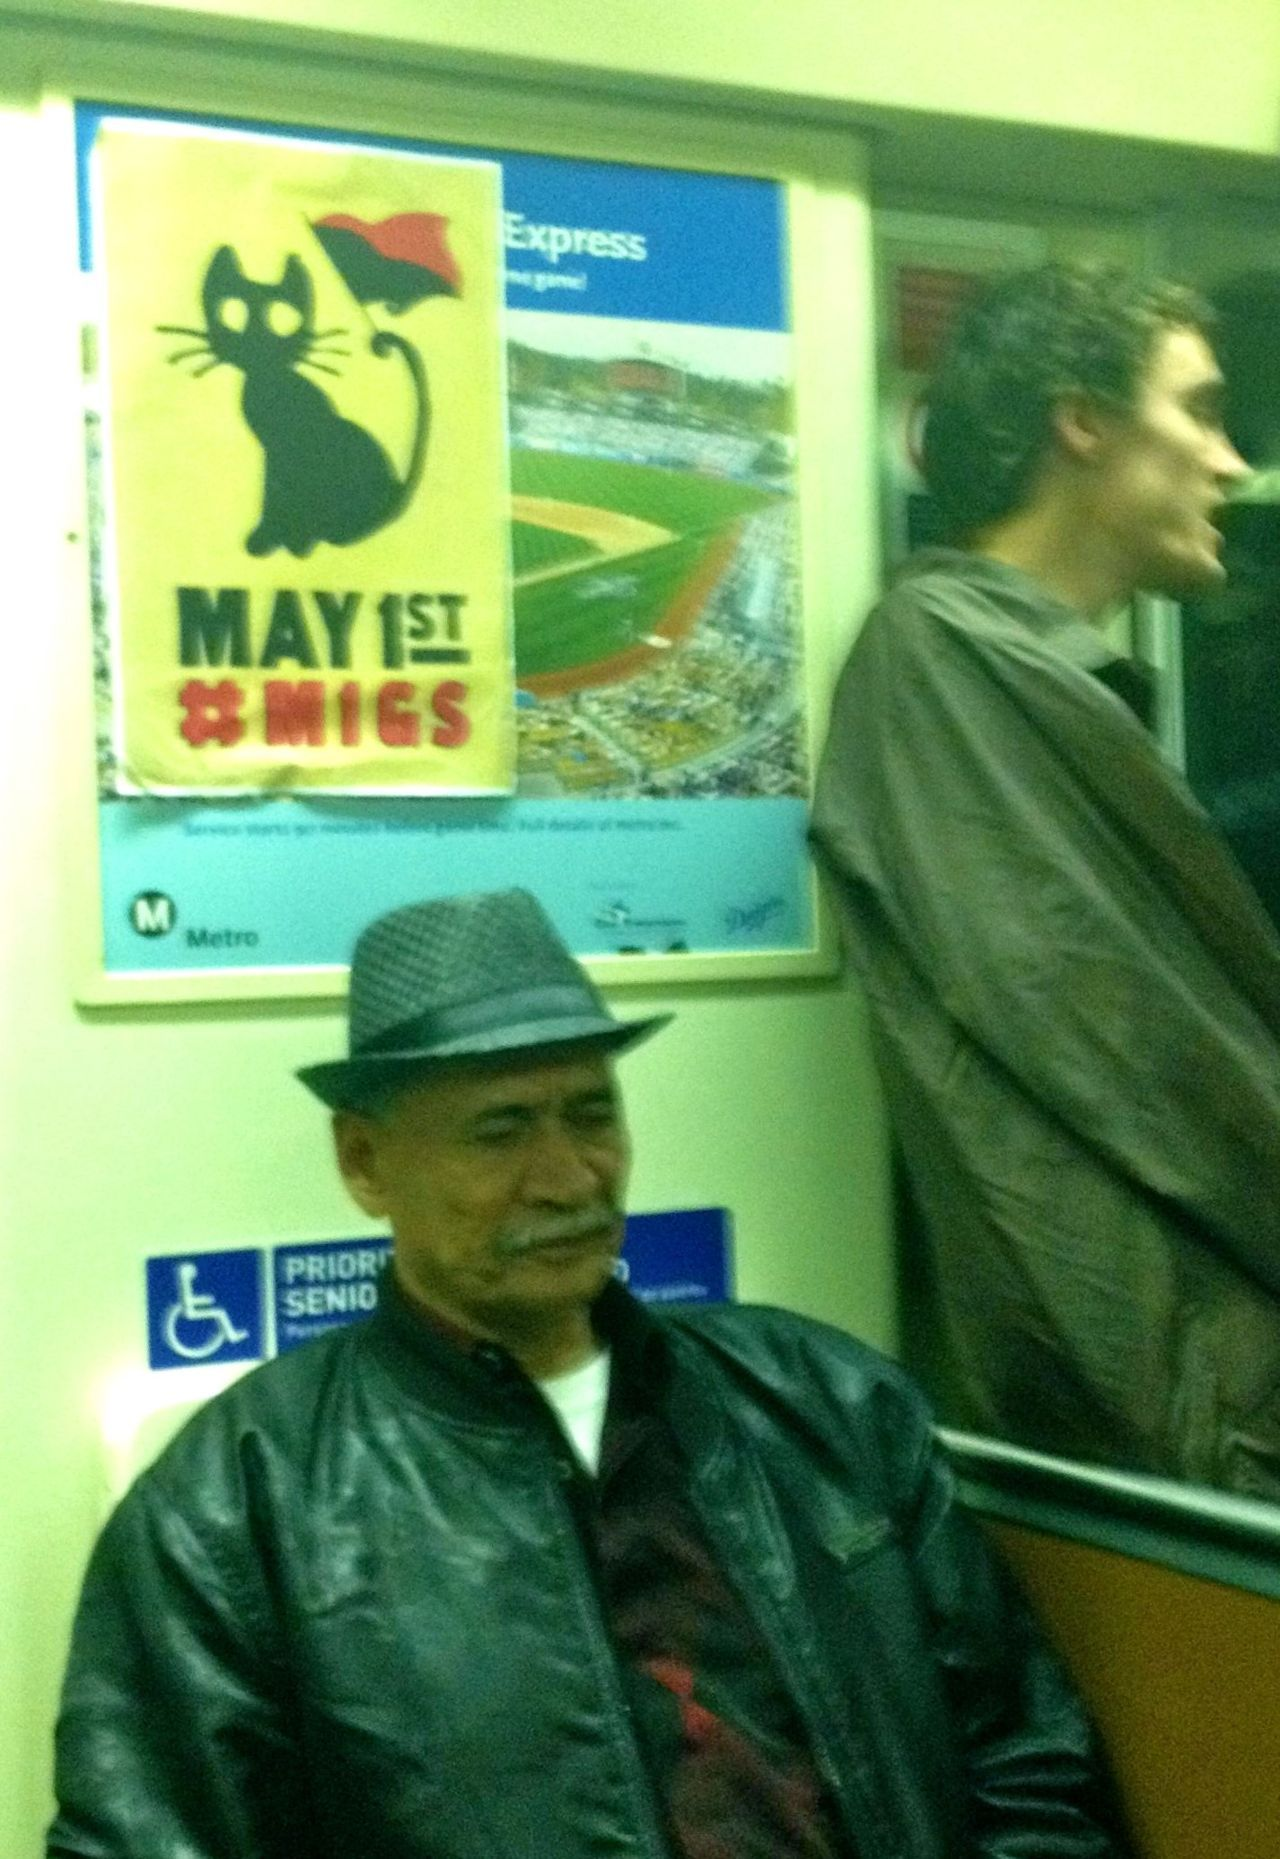 streetartsdistrict:  A stylish old man dozes on an L.A. subway car Sunday evening after youths put up a poster for the May 1 Occupy event happening in the city and elsewhere. I snagged a copy of the cat poster, which I really like.  From the standpoint of communication revolutions, I'm particularly fascinated that the poster contains such sparse information, just a date and a Twitter hash tag. Those who check out #M1GS will finds lots of talk and connections for Occupy events on May 1 around the country. Fascinating.